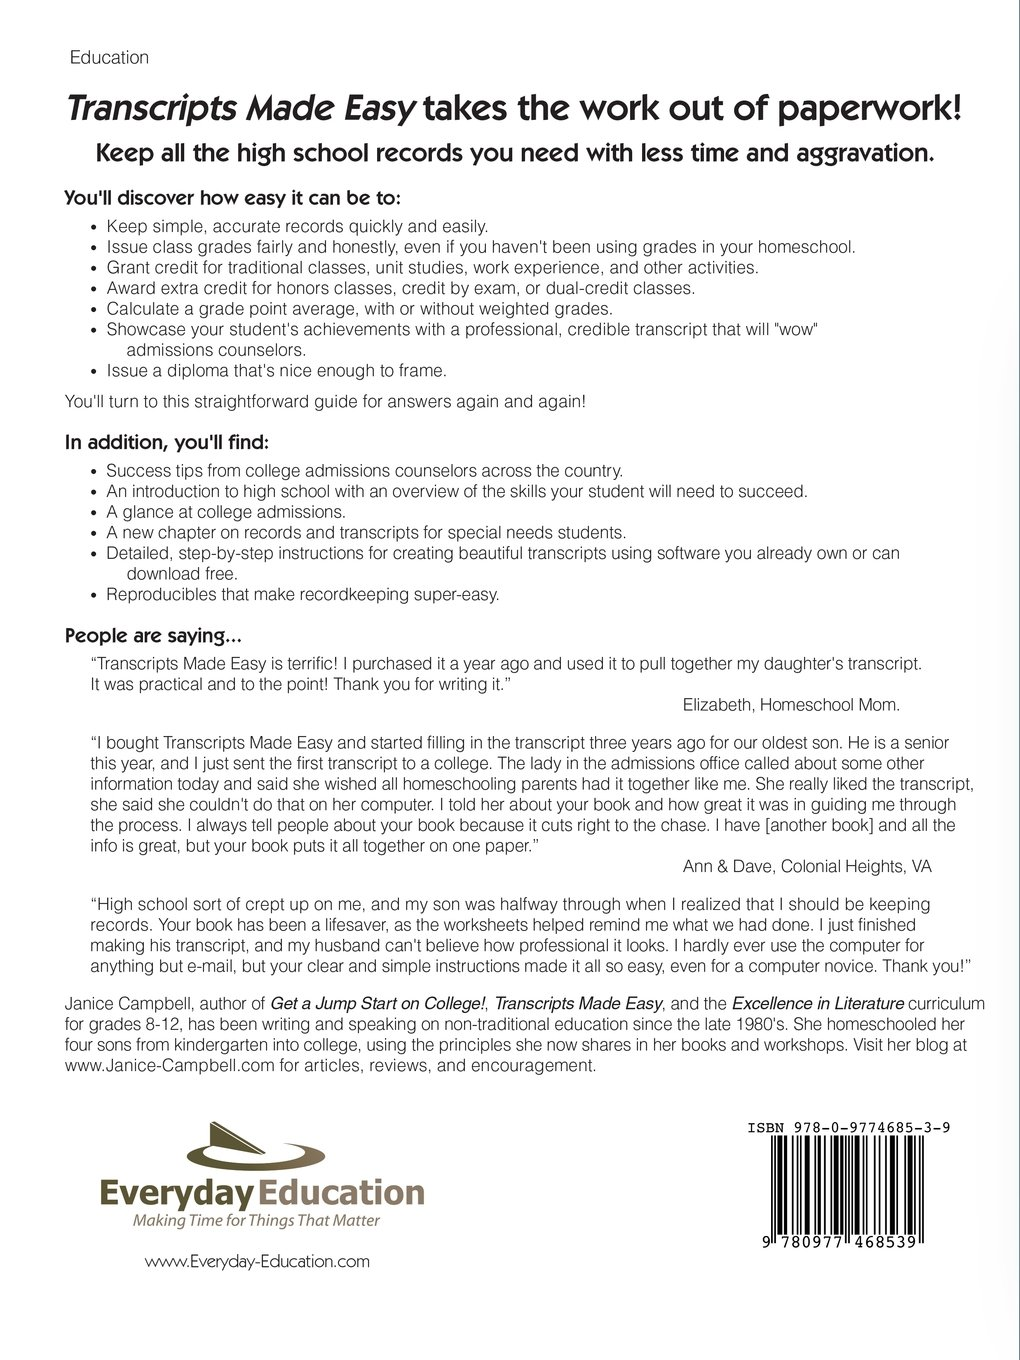 Transcripts Made Easy The Homeschoolers Guide To High School  Transcripts Made Easy The Homeschoolers Guide To High School Paperwork  Janice Campbell  Amazoncom Books